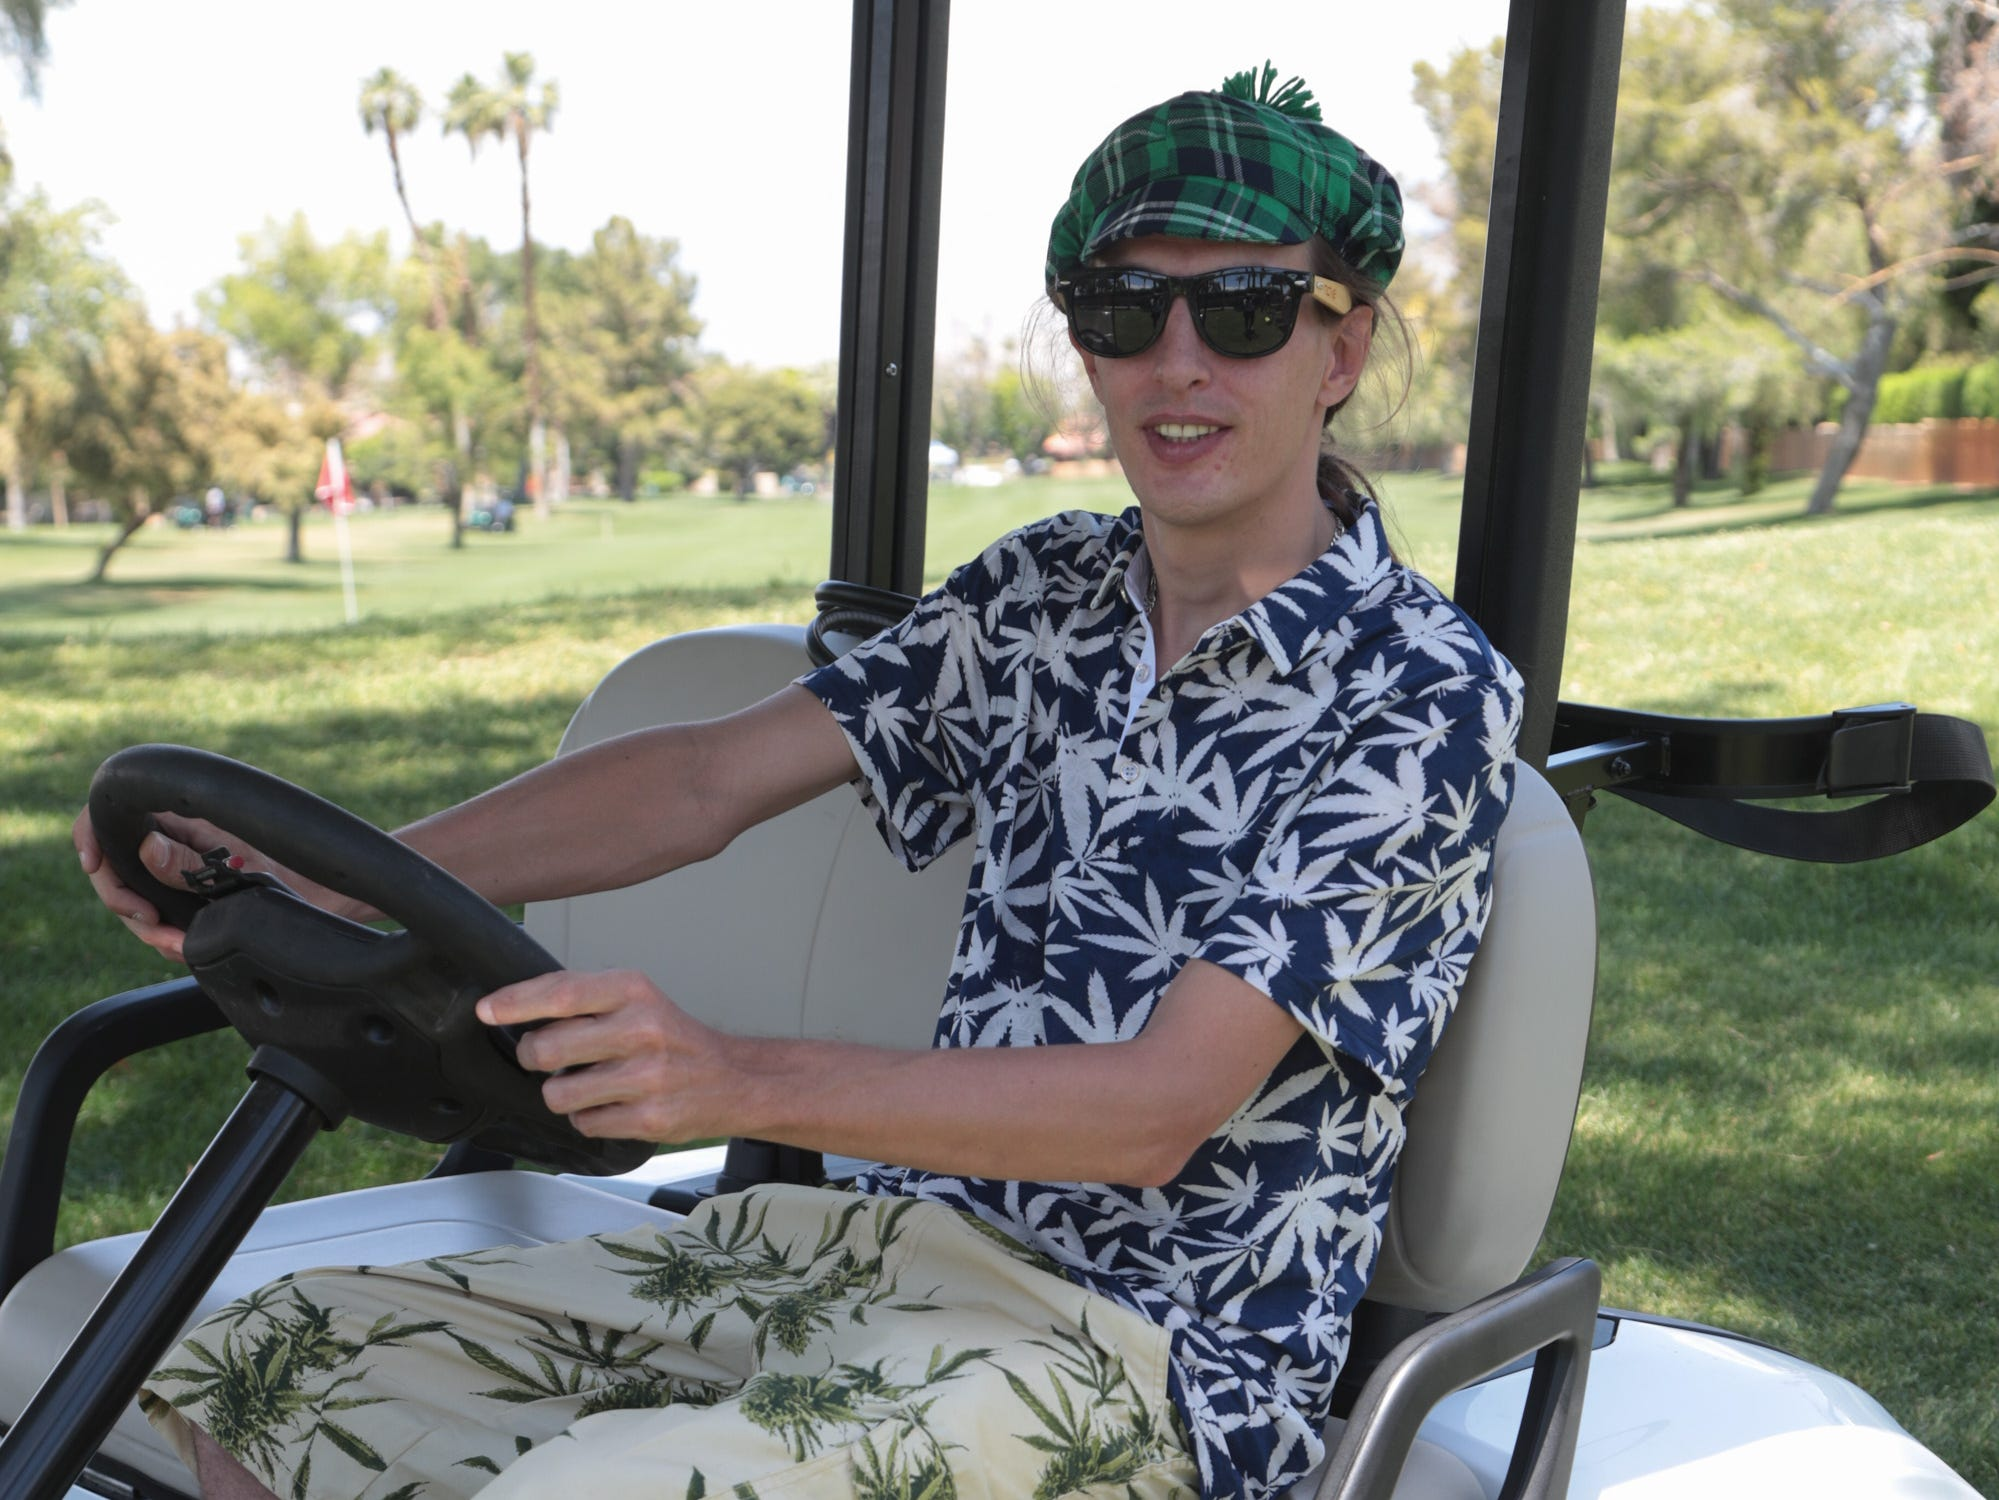 Quentin Dusastre, Director of Operations at the Coachella Valley Cannabis Alliance Network, checks in with groups of golfers at the organization's first charity golf tournament, Palm Desert, Calif., May 11, 2019.